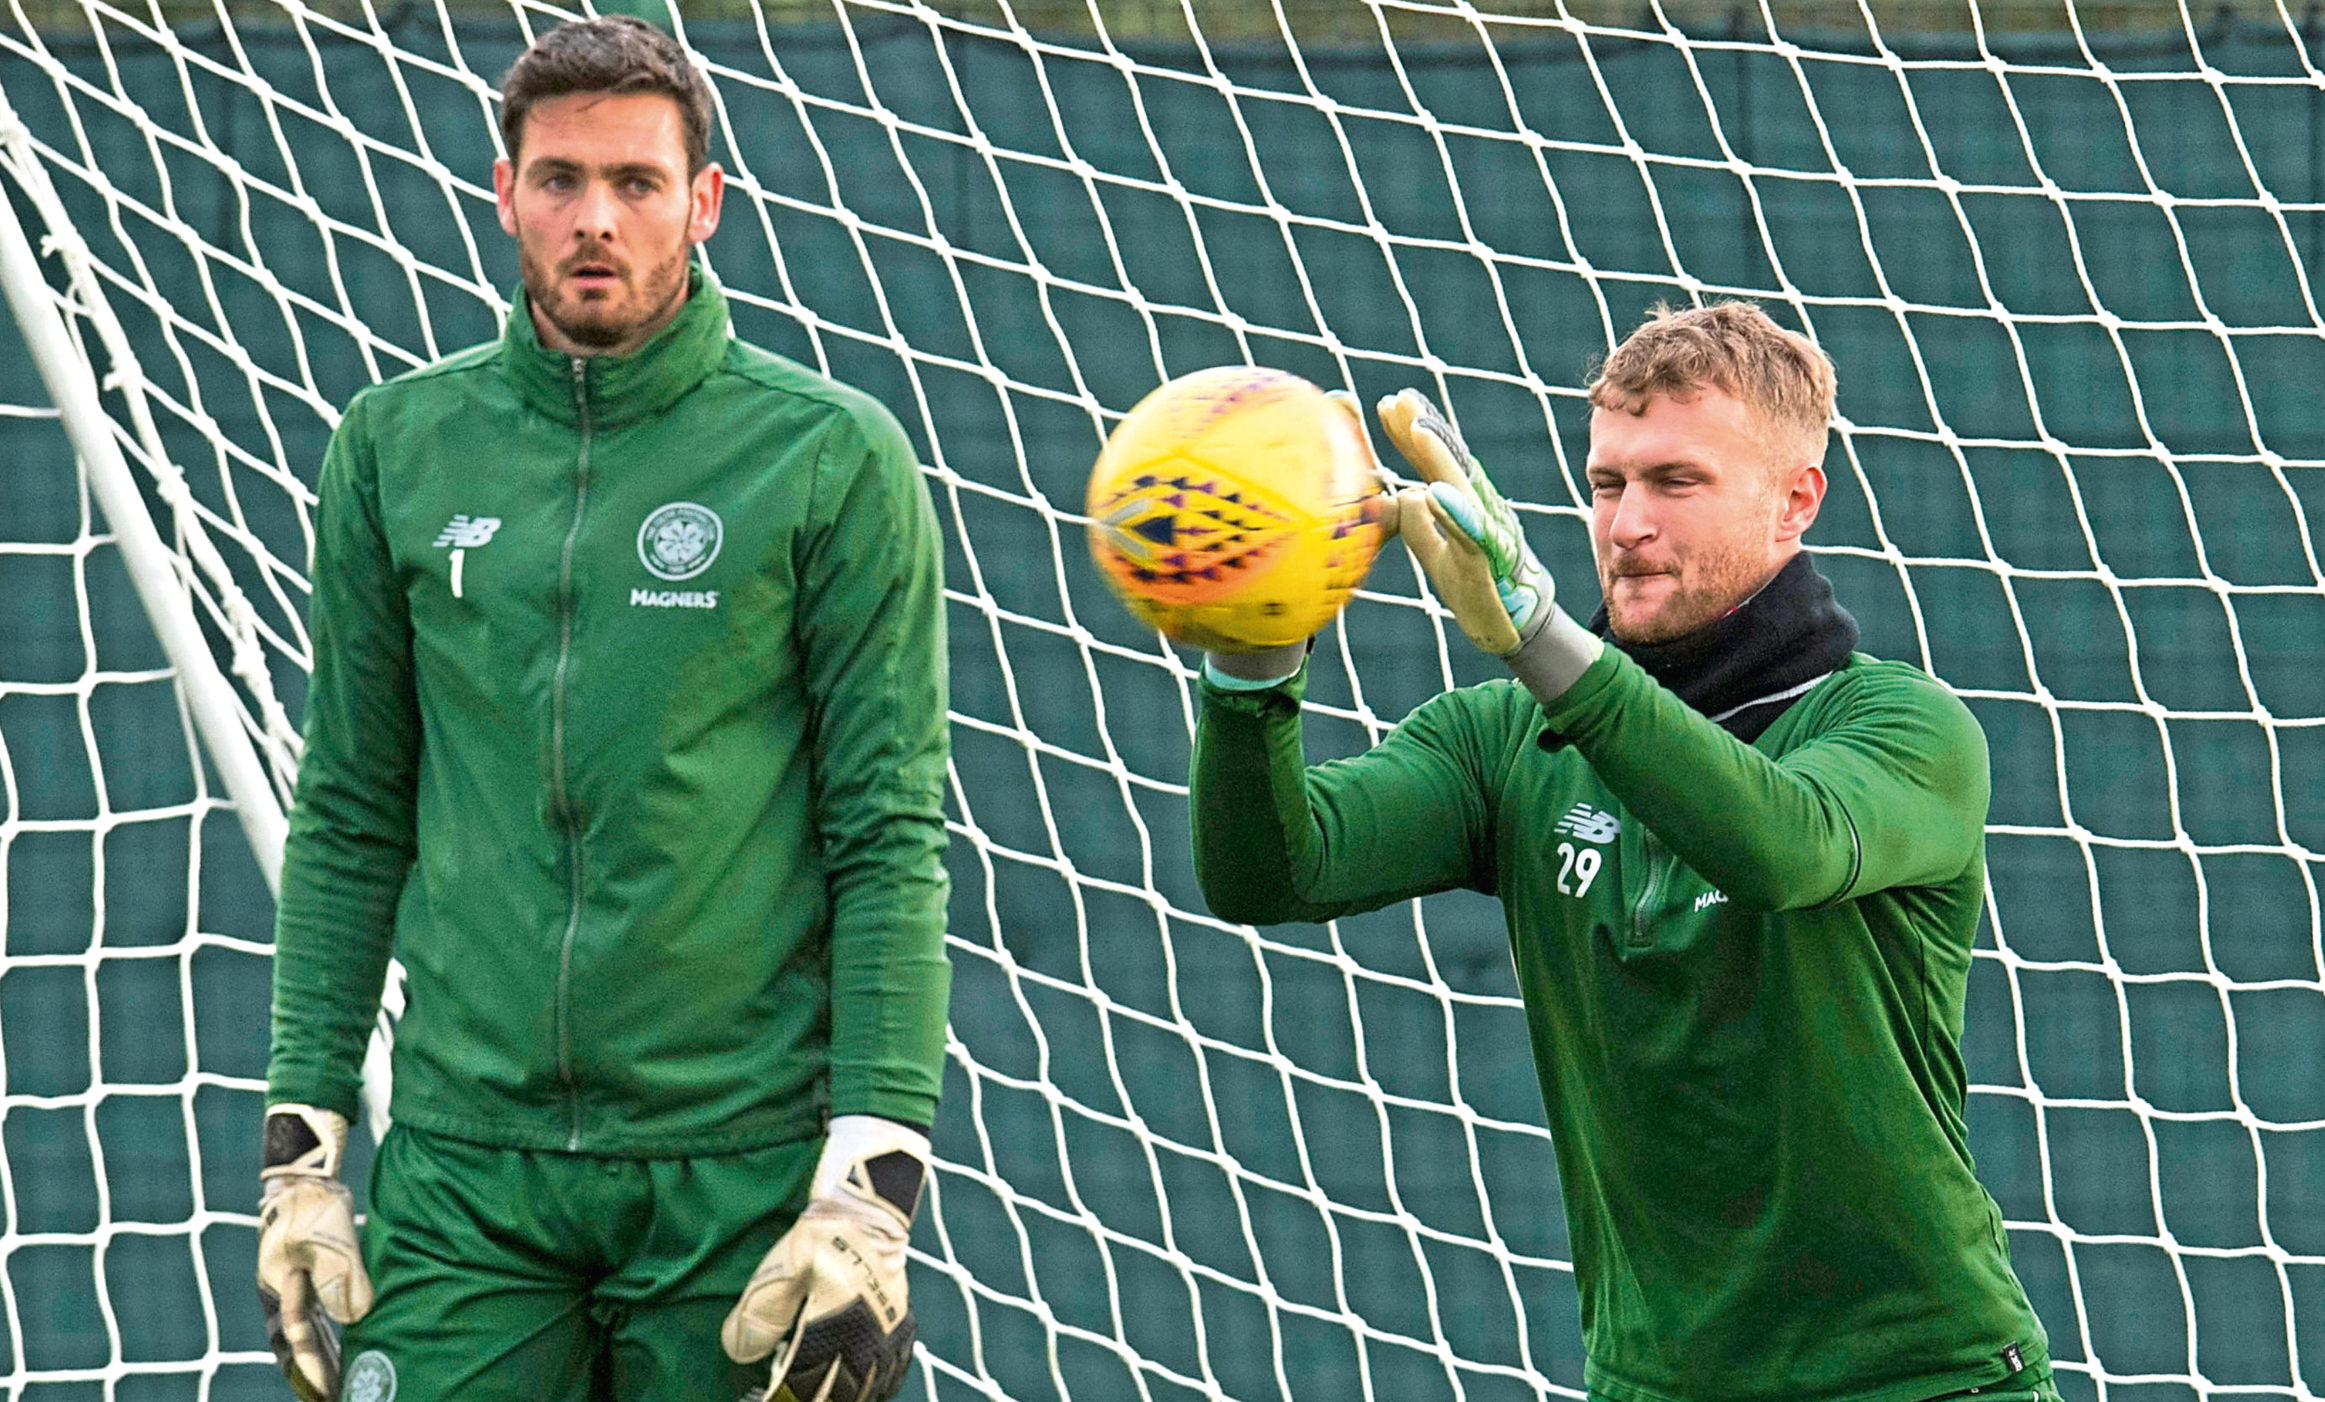 Celtic's Scott Bain (R) with Craig Gordon at training